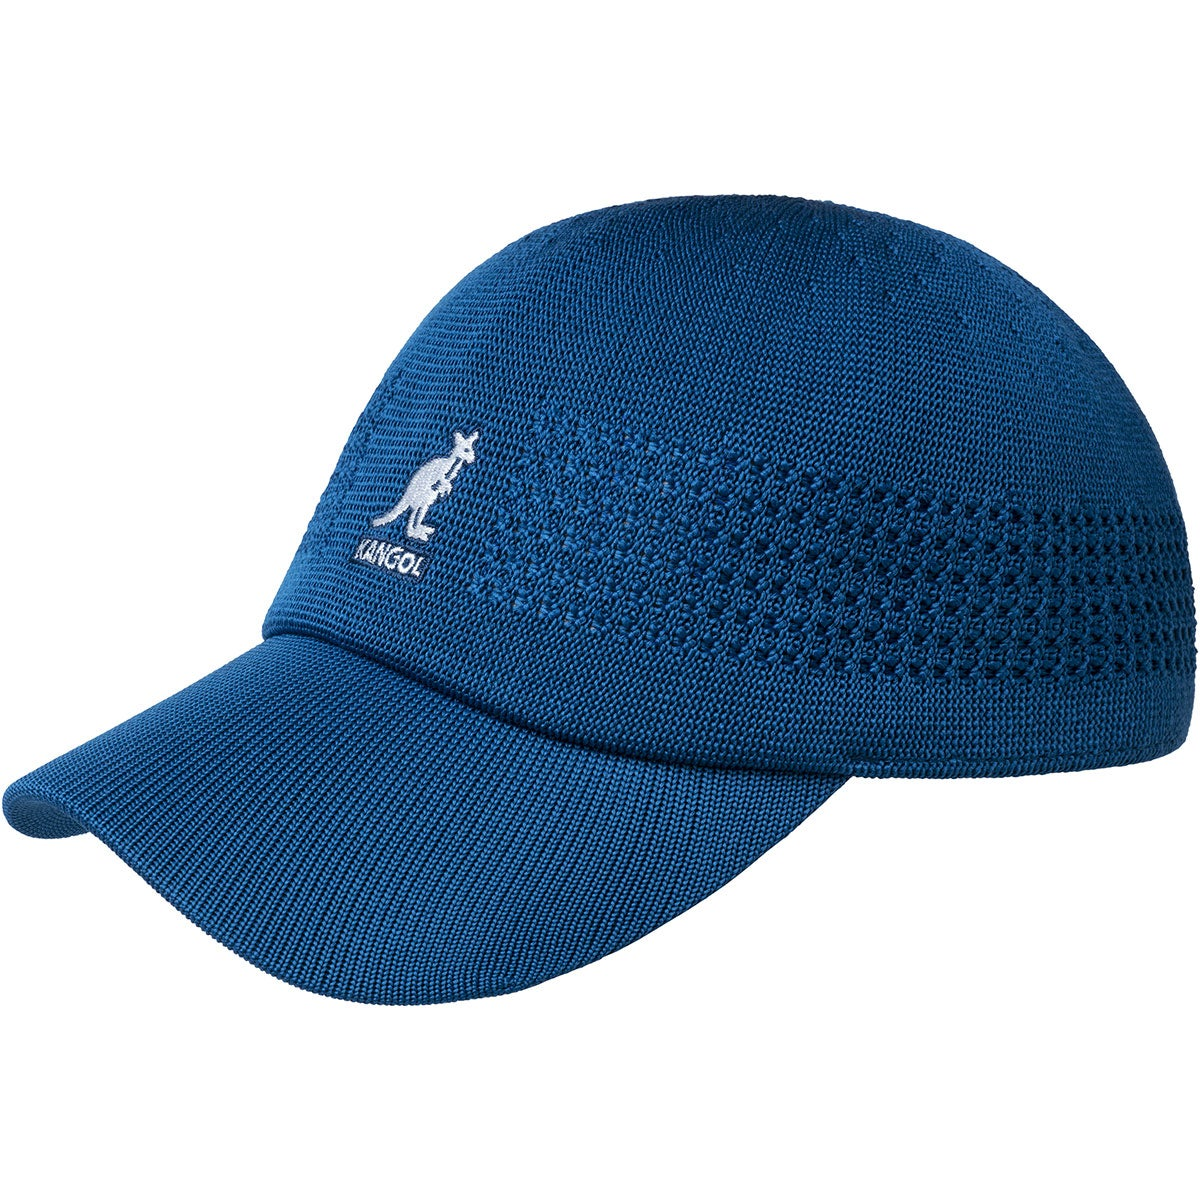 Kangol Herren Tropic Ventair Spacecap Baseball Cap